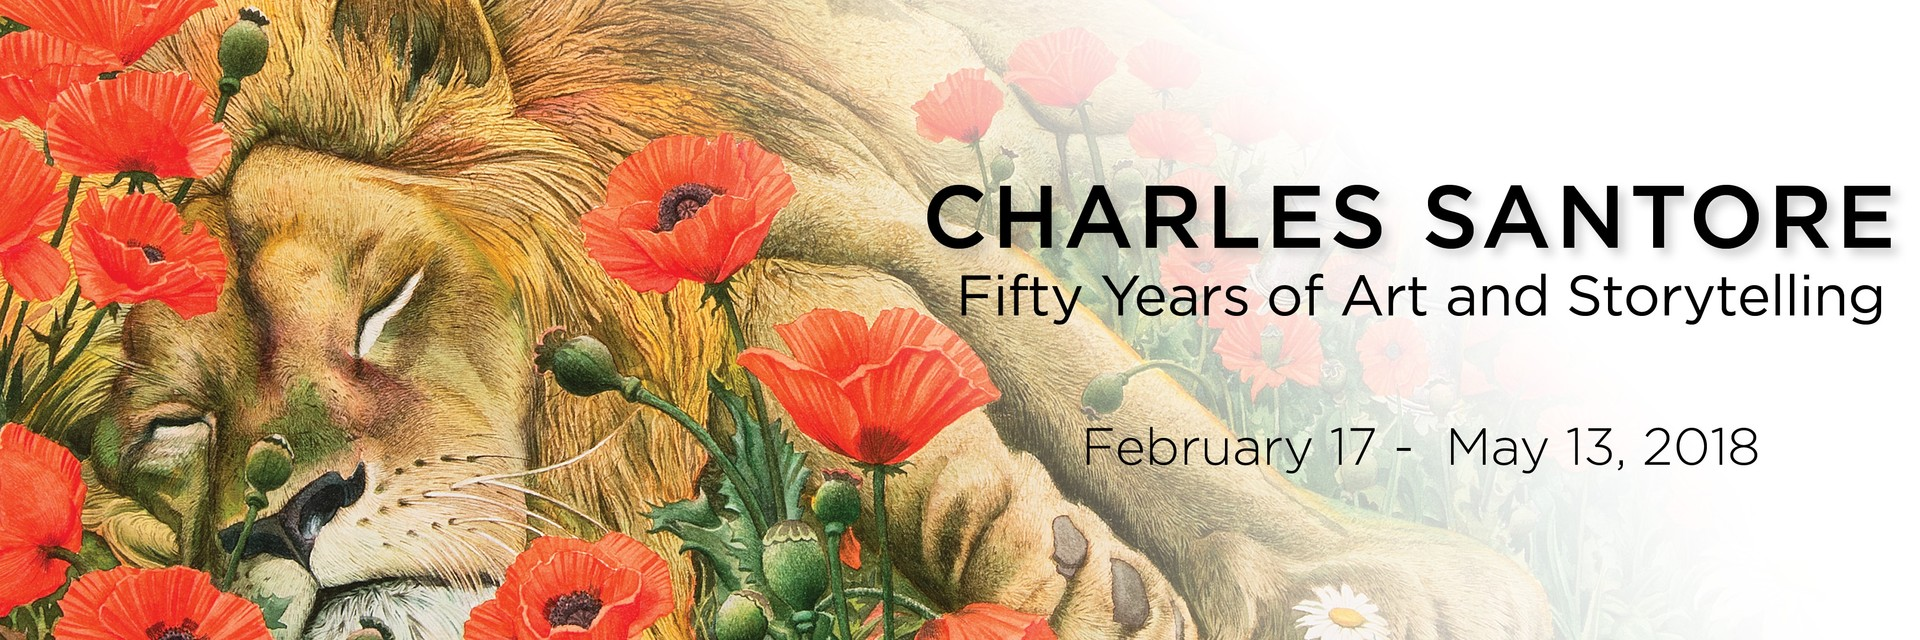 Charles Santore: Fifty Years of Art and Storytelling